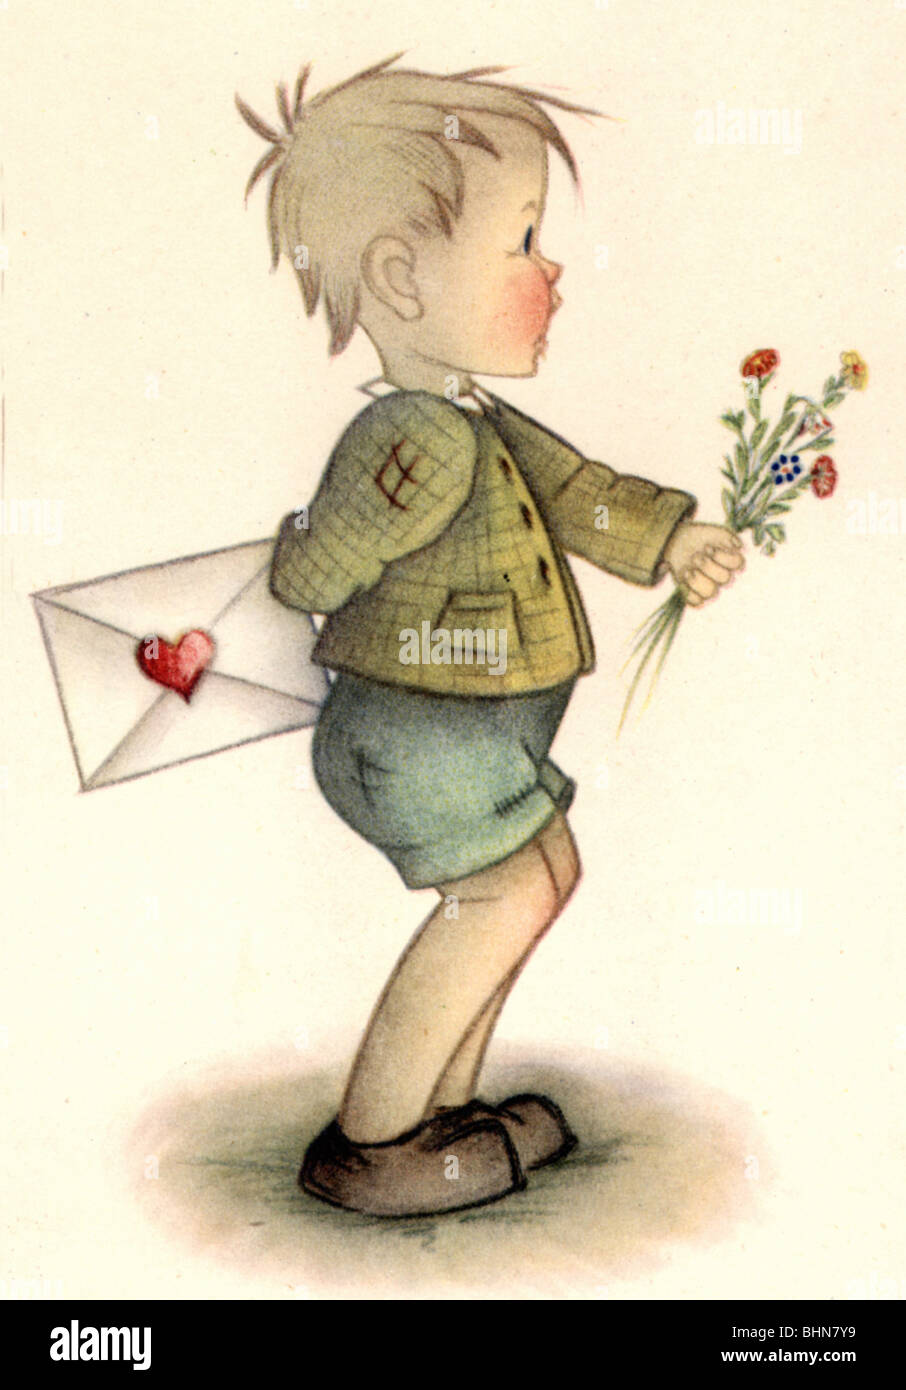 Kitsch souvenir greetings card boy with love letter and kitsch souvenir greetings card boy with love letter and flowers drawing by f probst historic historical mothers day l kristyandbryce Image collections